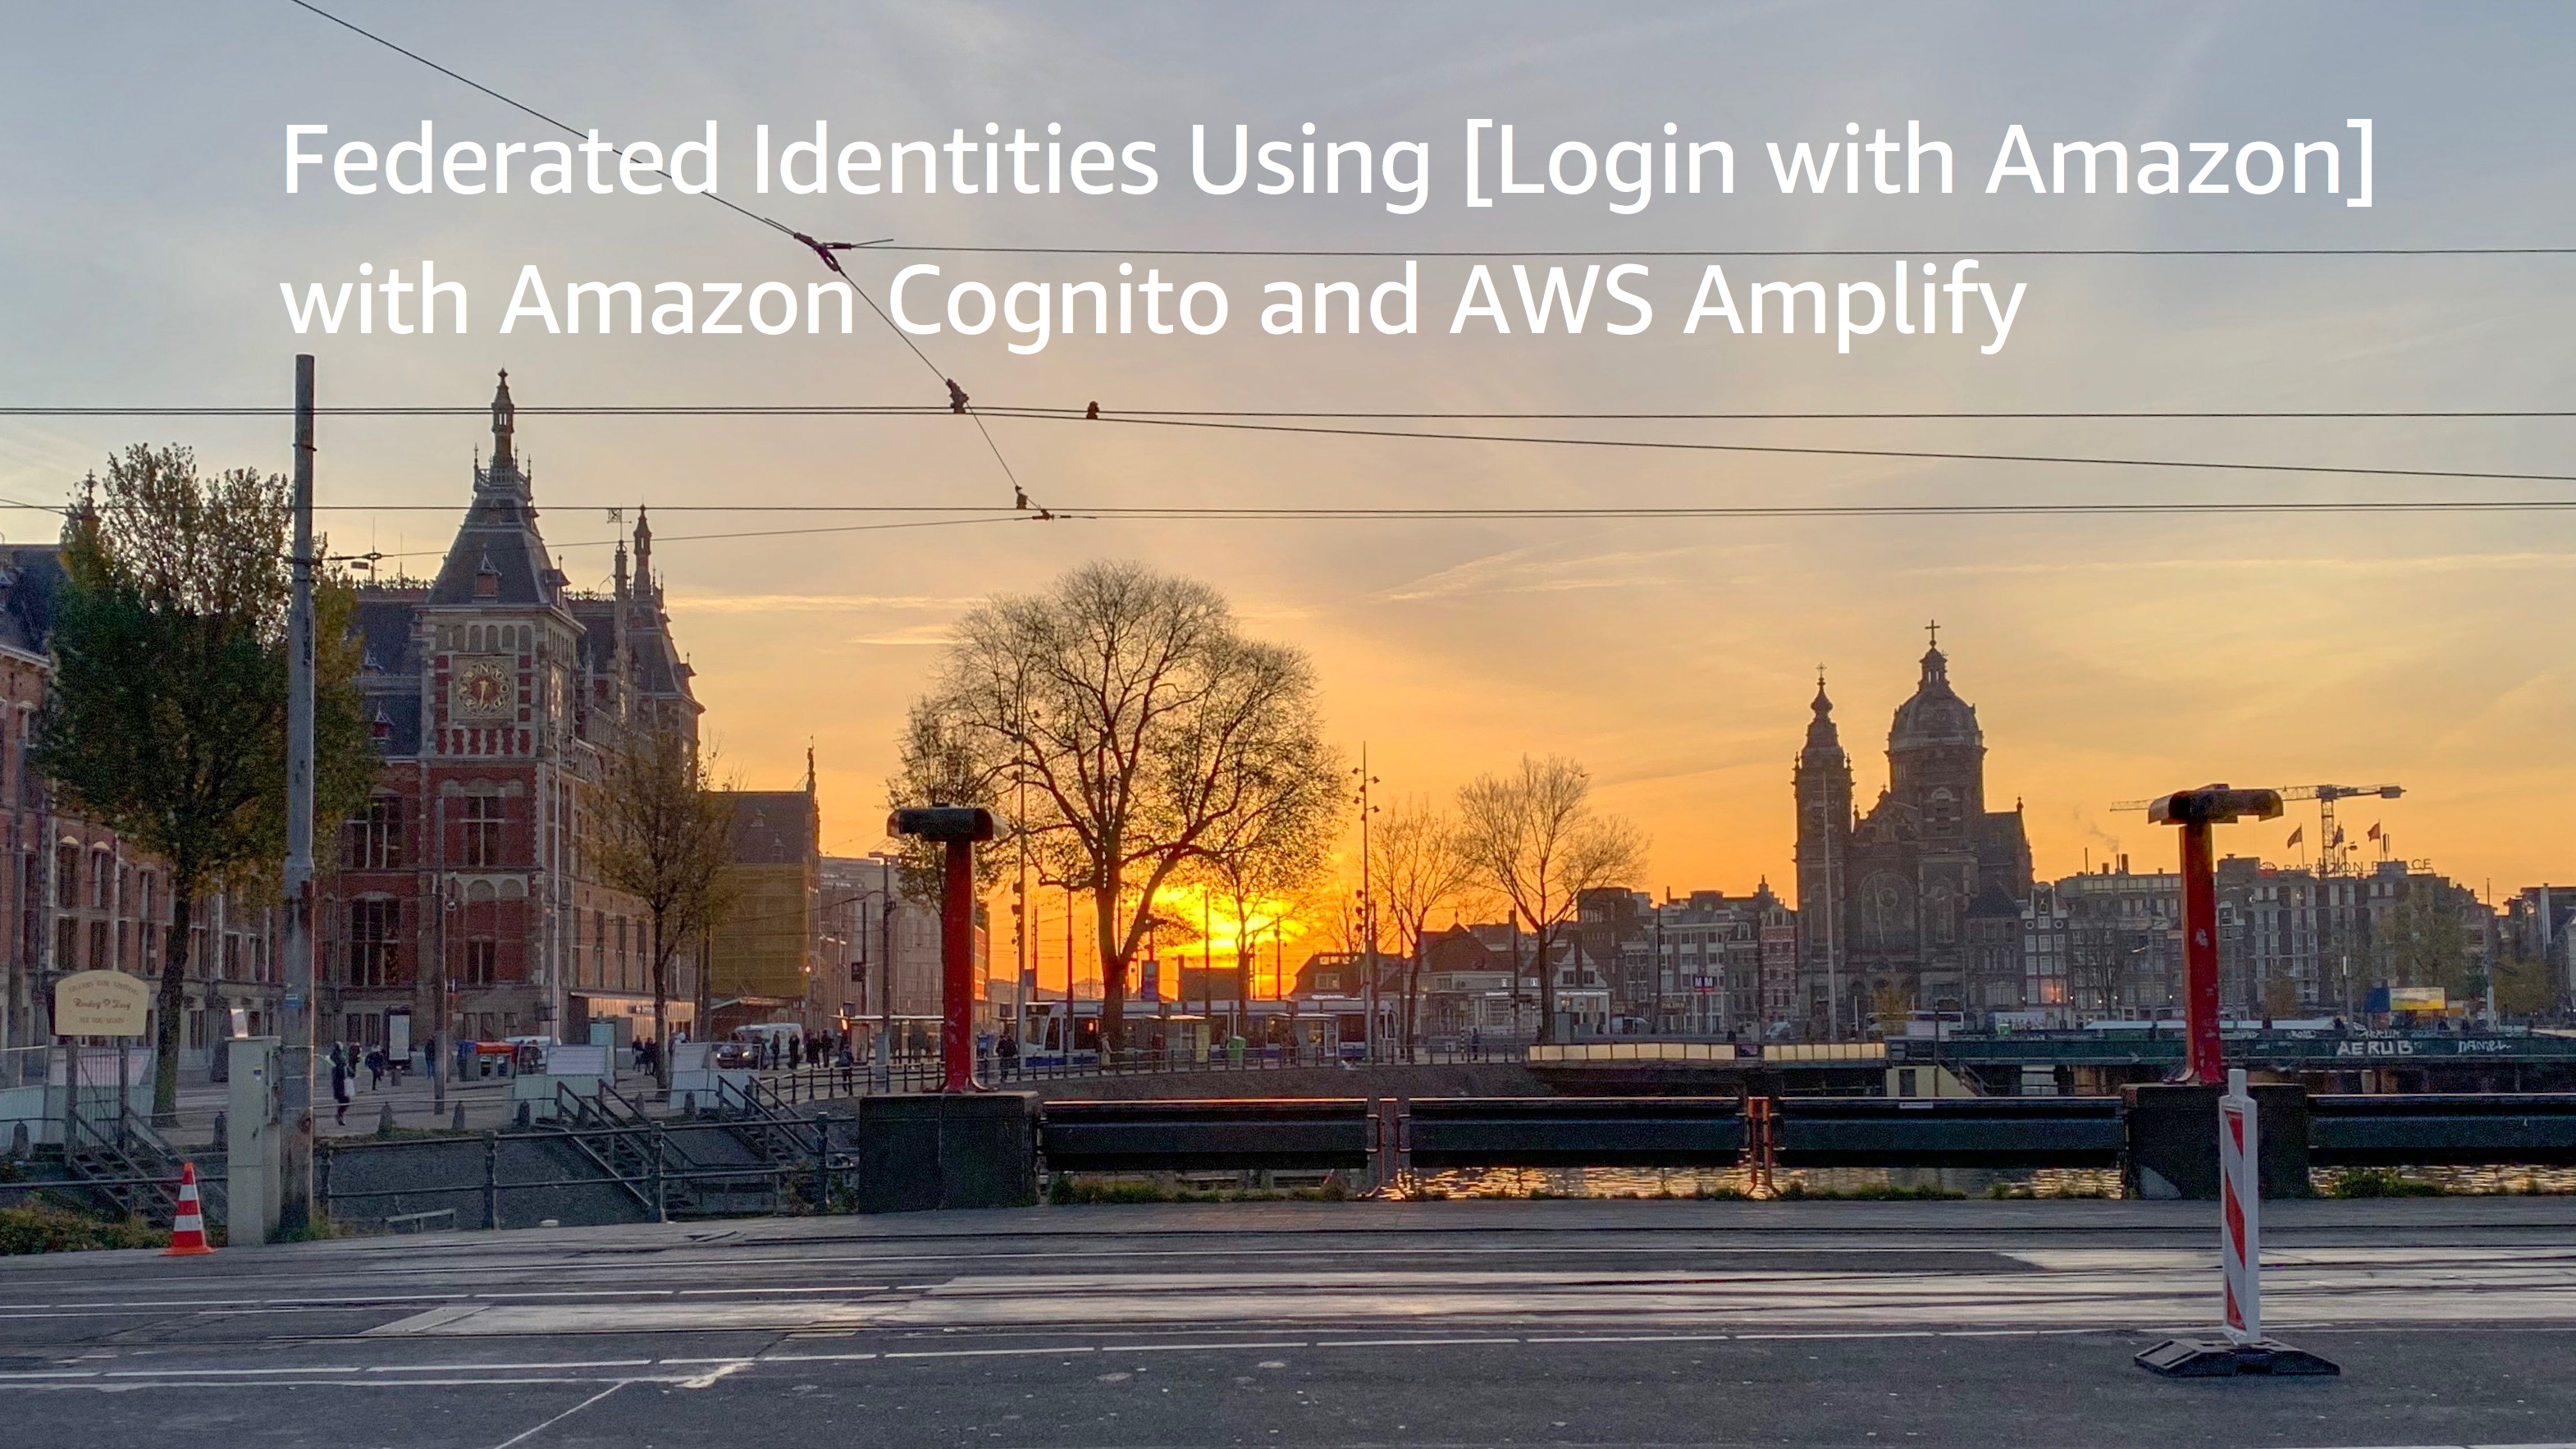 Using Login with Amazon as an Identity Provider for iOS